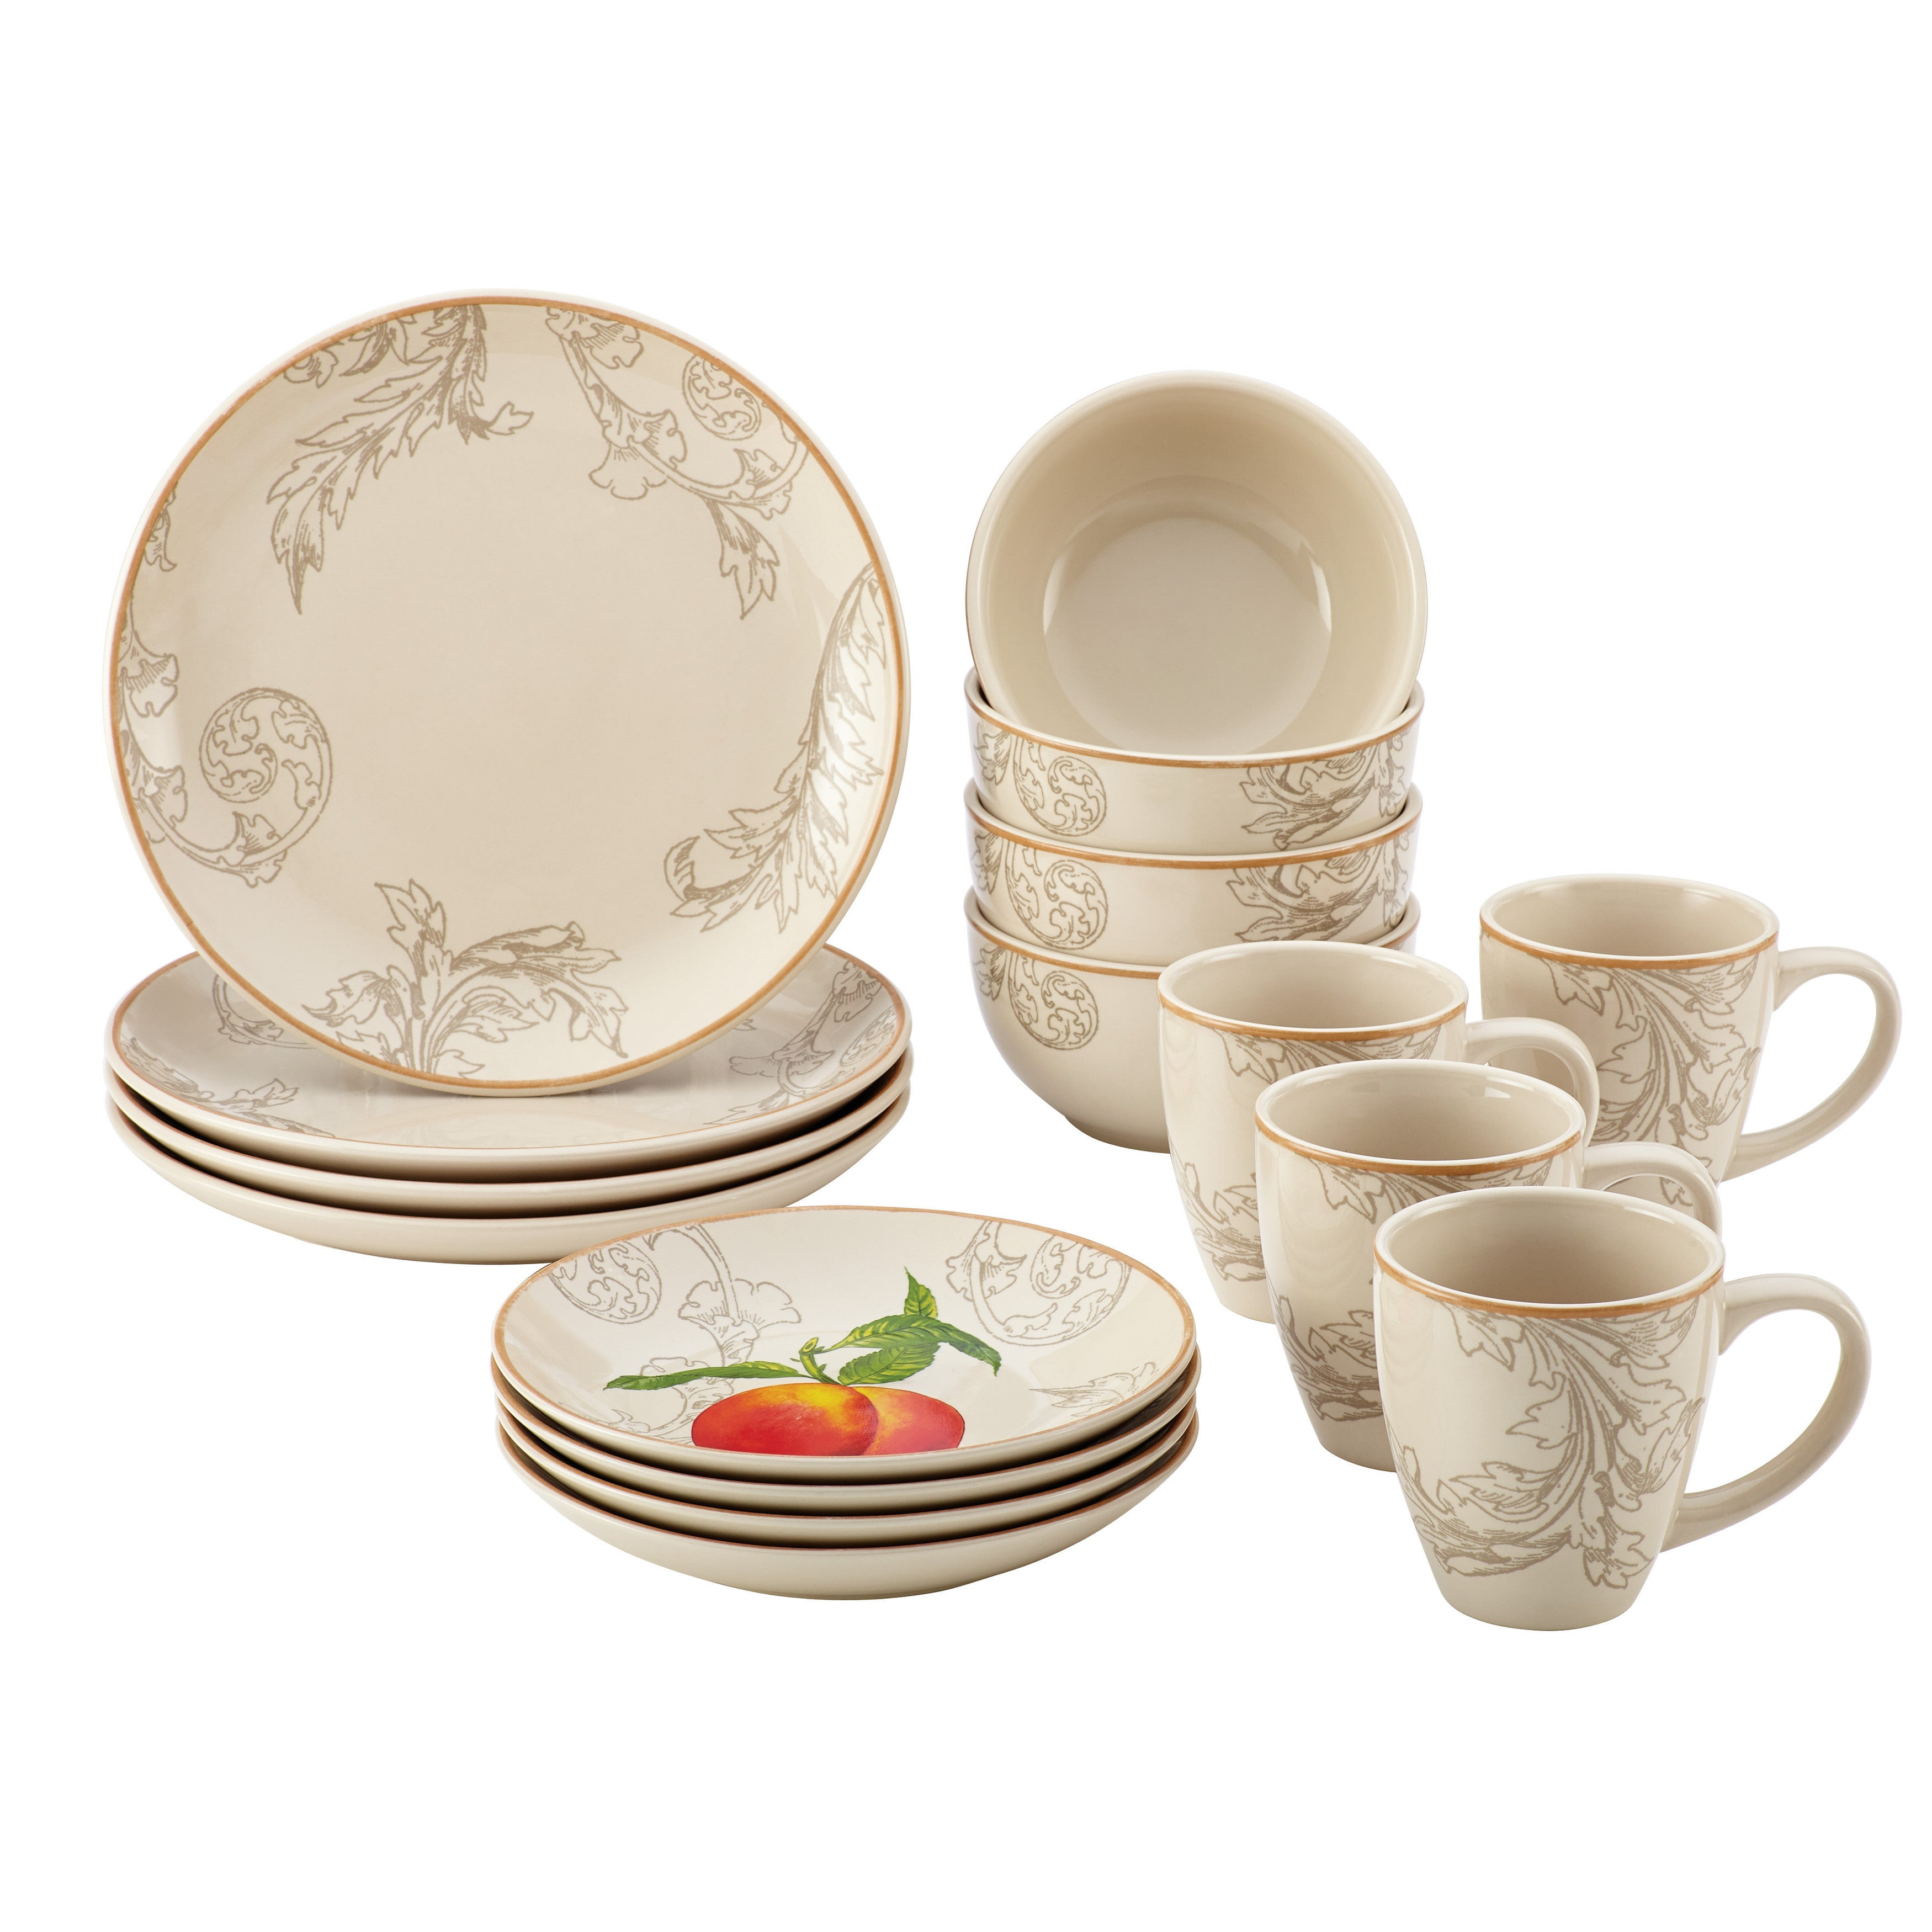 Paula Deen Orchard Harvest Stoneware 16 Piece Dinnerware Set Free Shipping Today 22280158